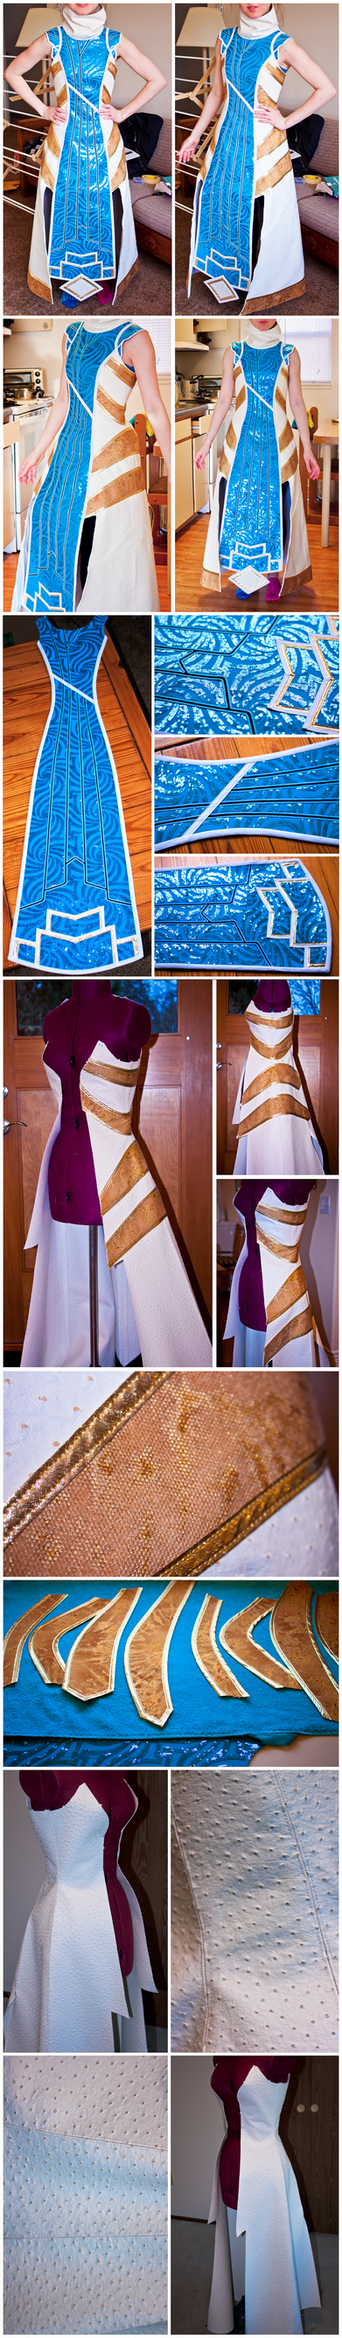 Guild Wars 2 - Asura CoE Progress by elliria